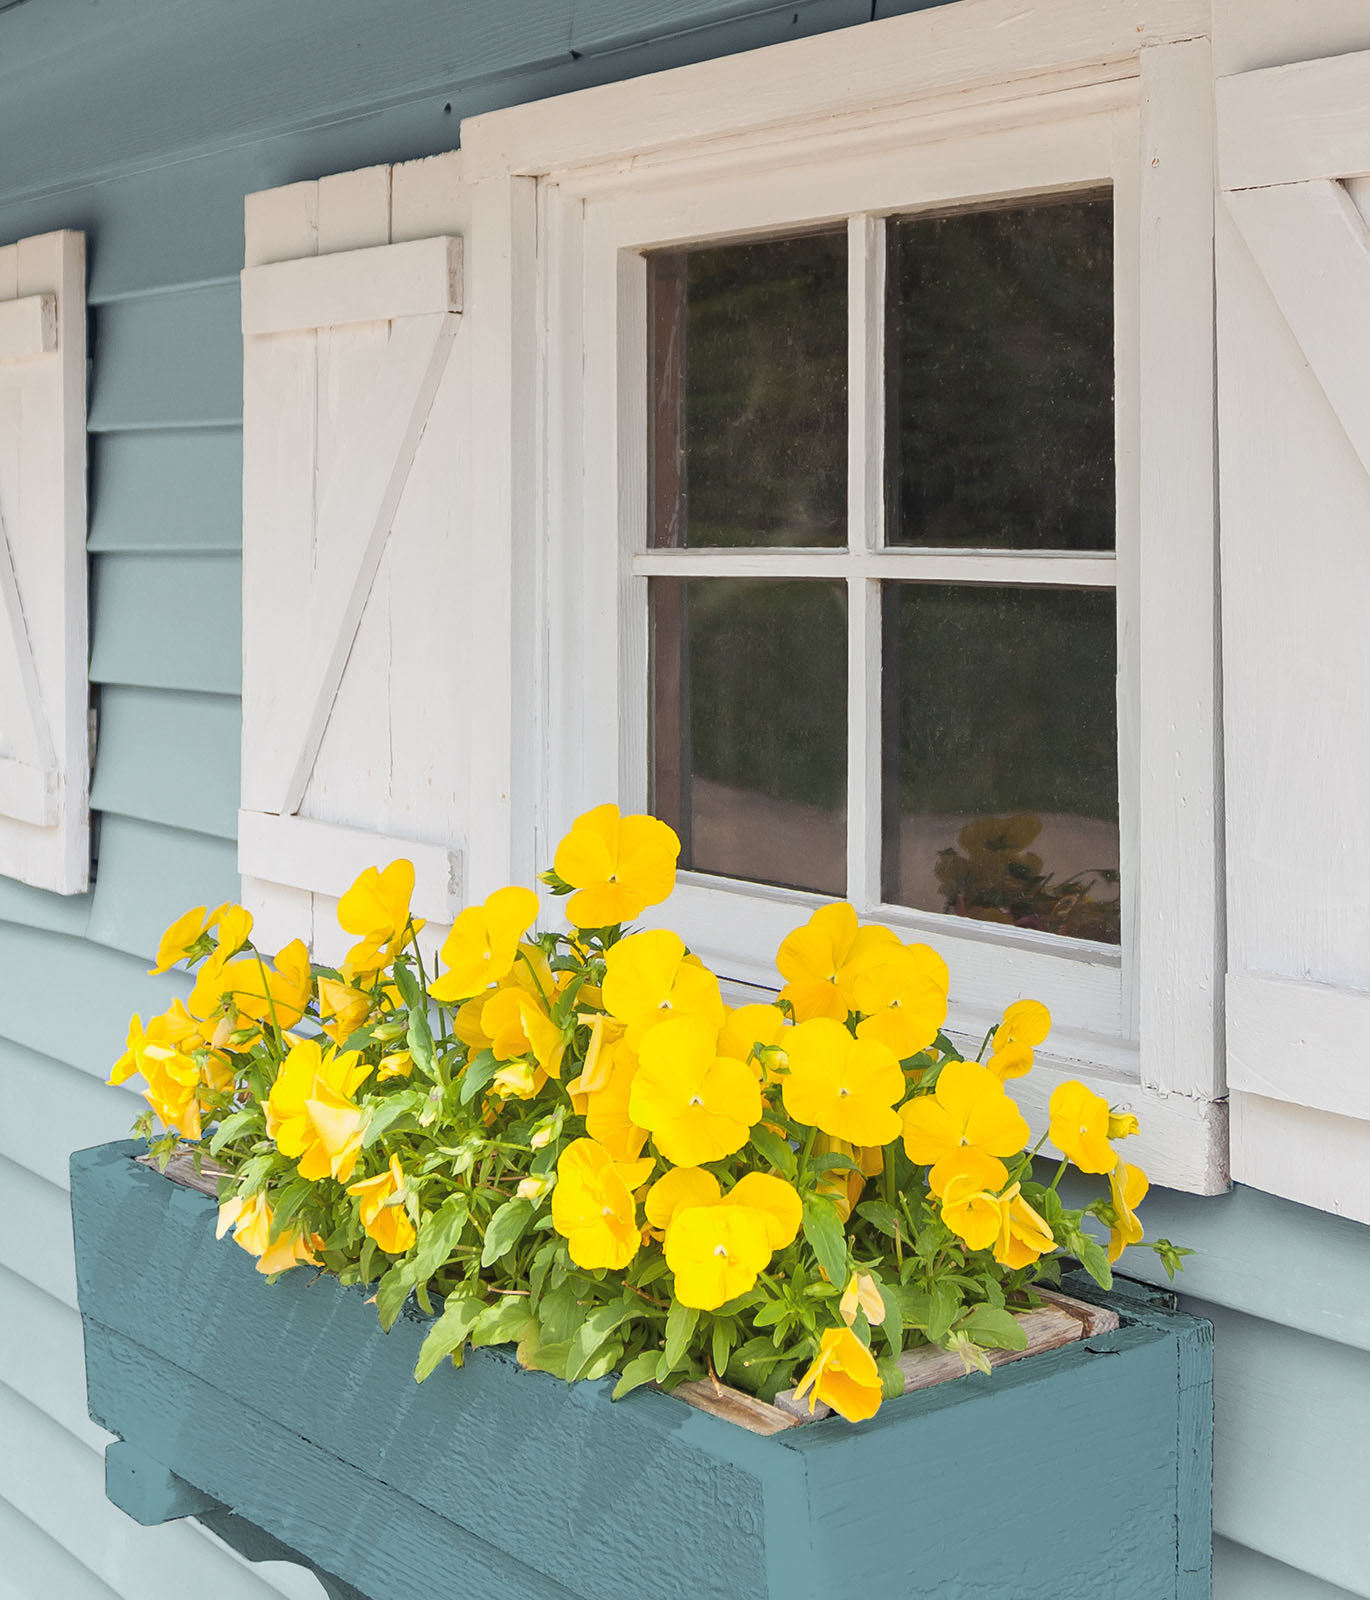 The exterior of a home focused on the window sill with a planter of yellow flowers hanging under the window.